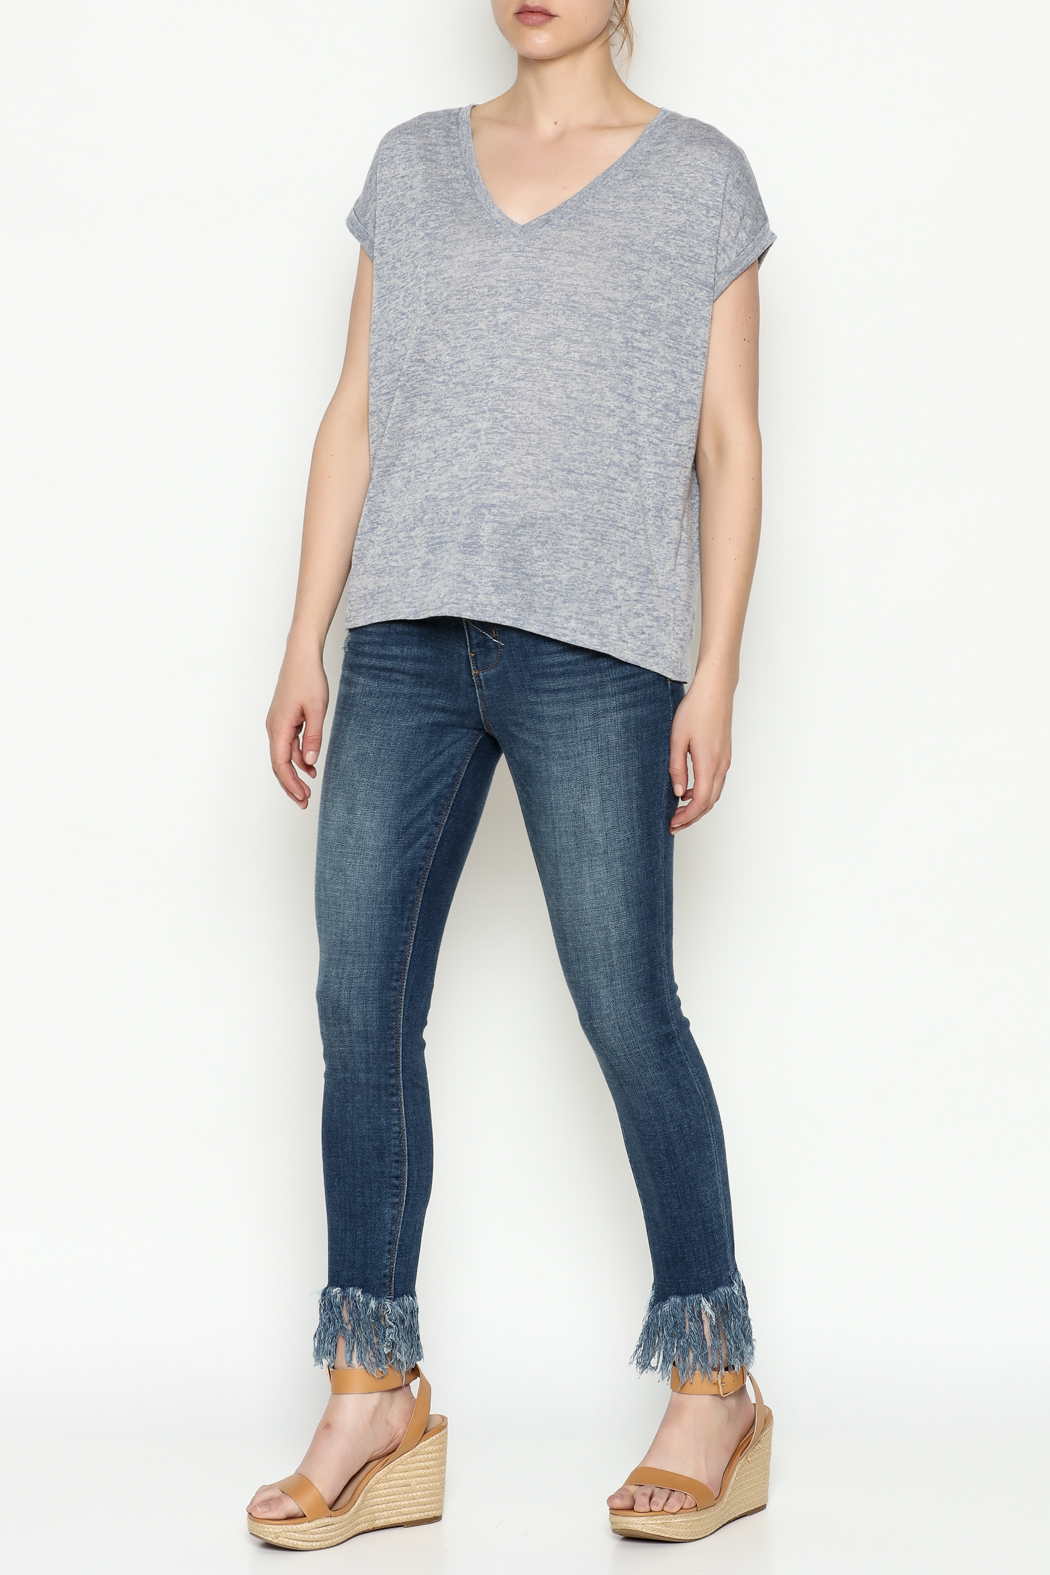 Gentle Fawn Boyfriend V Neck Tee - Side Cropped Image